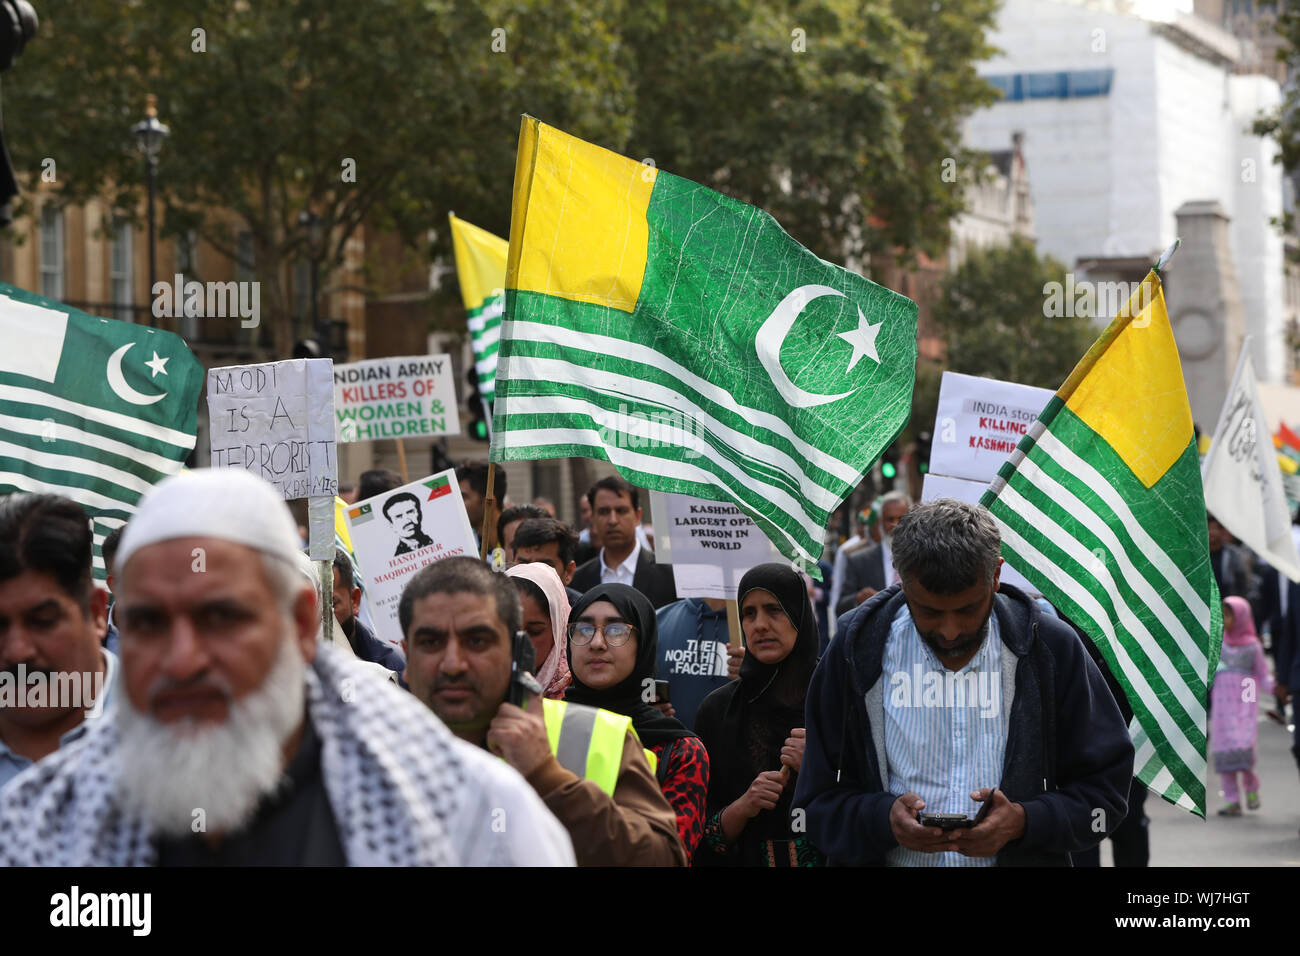 Pro-Kashmiri independence campaigners walk along Whitehall in London, over the issue of India revoking a Article 370, a law which had given the disputed state of Kashmir semi independence via a certain amount of autonomy. - Stock Photo